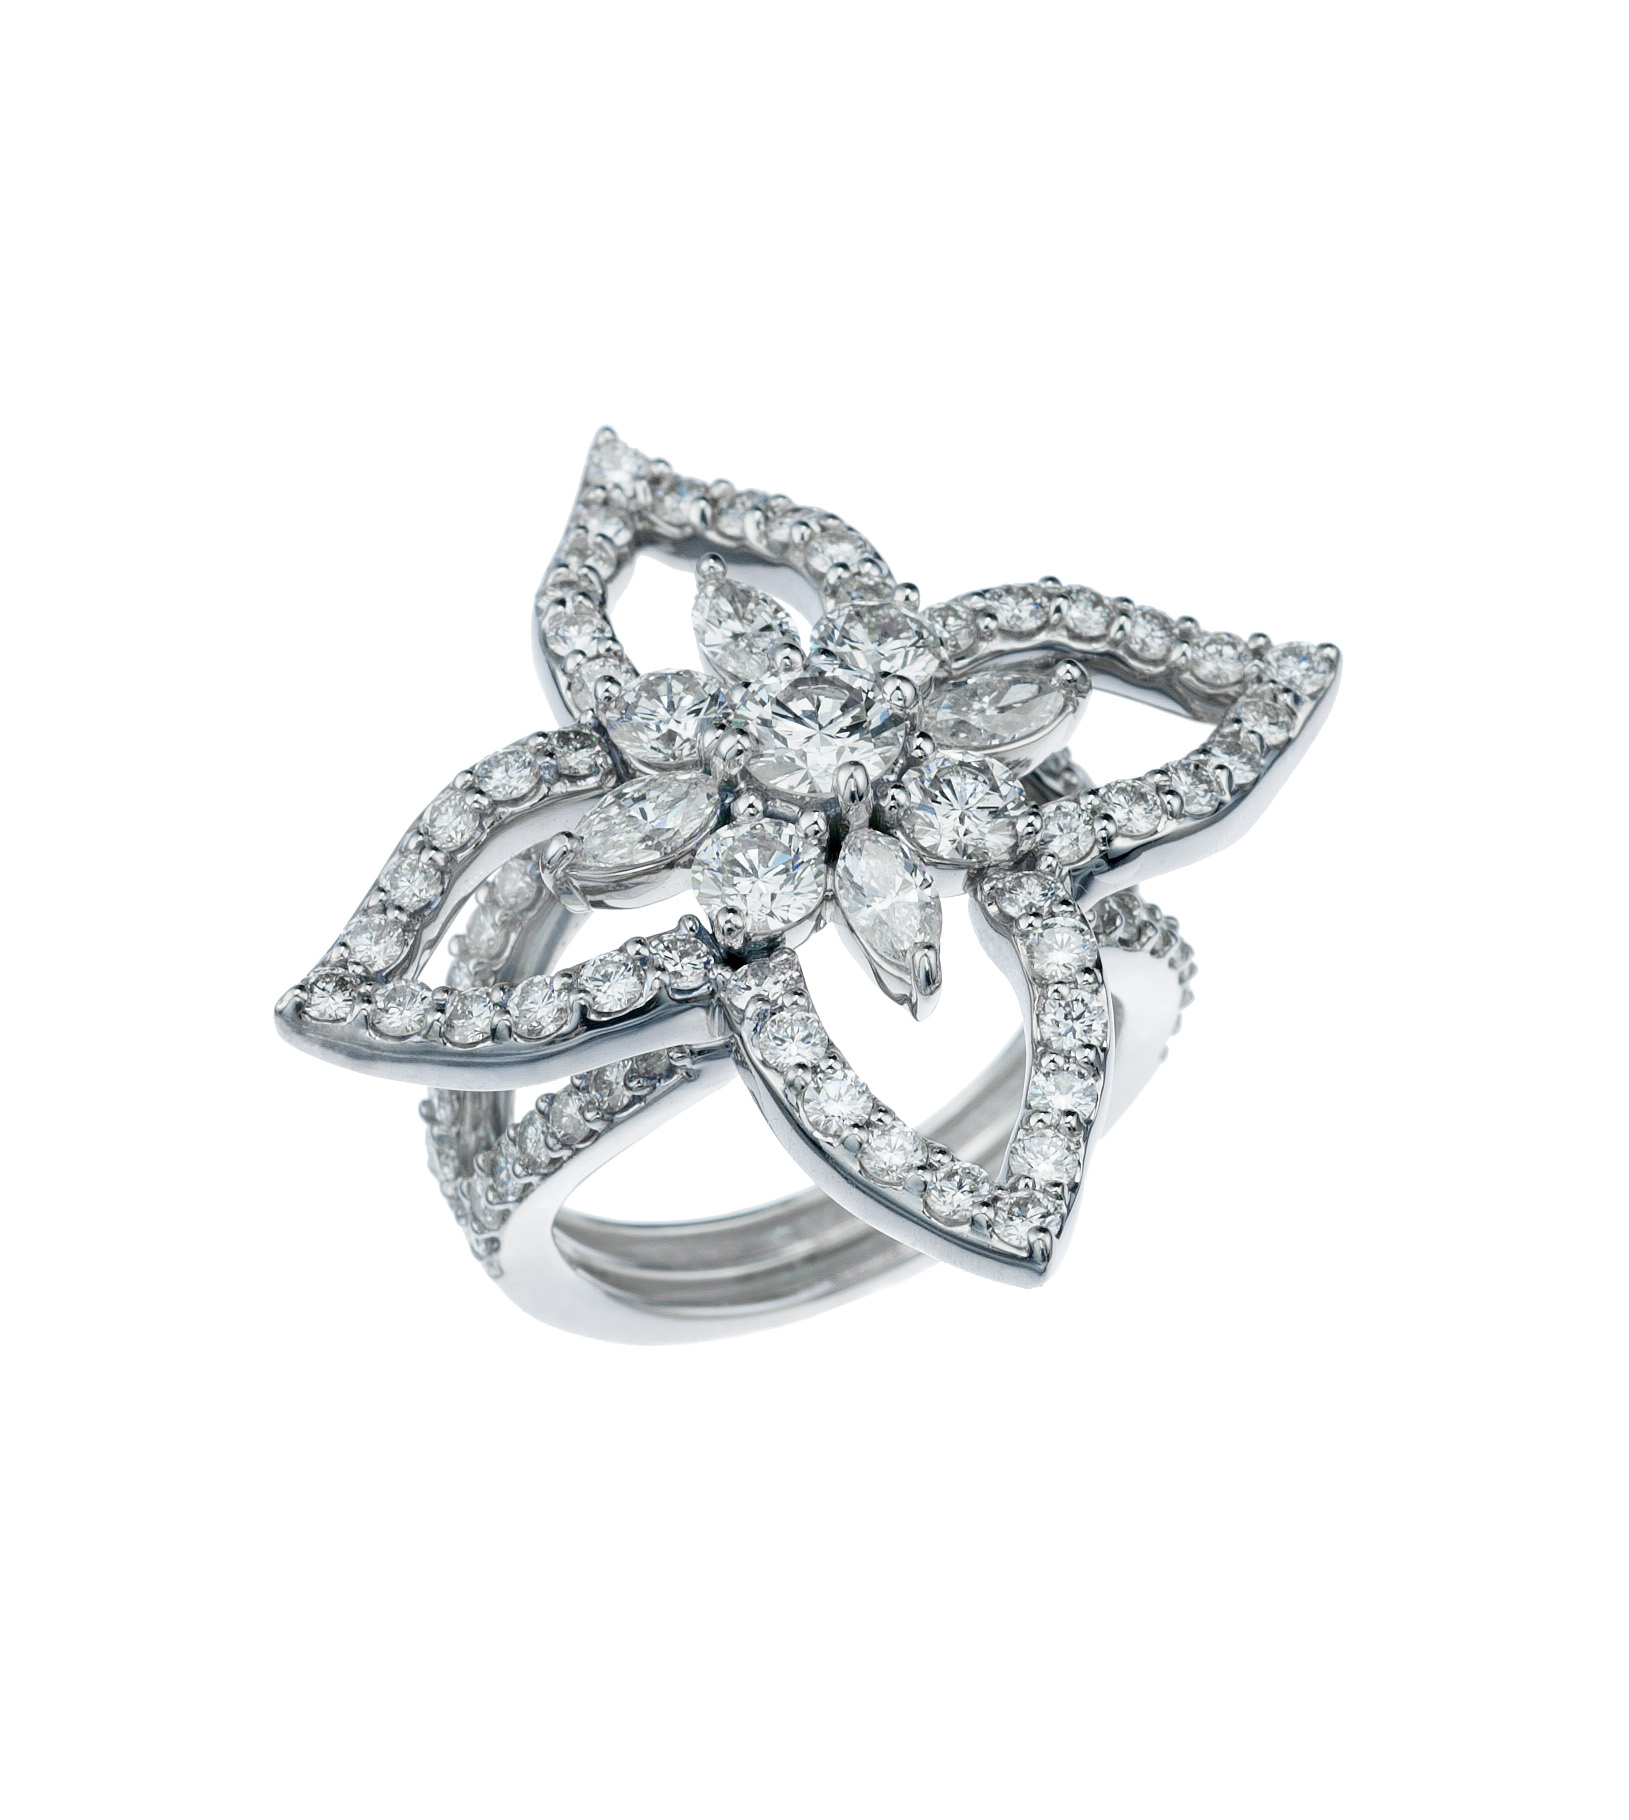 Floral diamond ring in 18-karat white gold